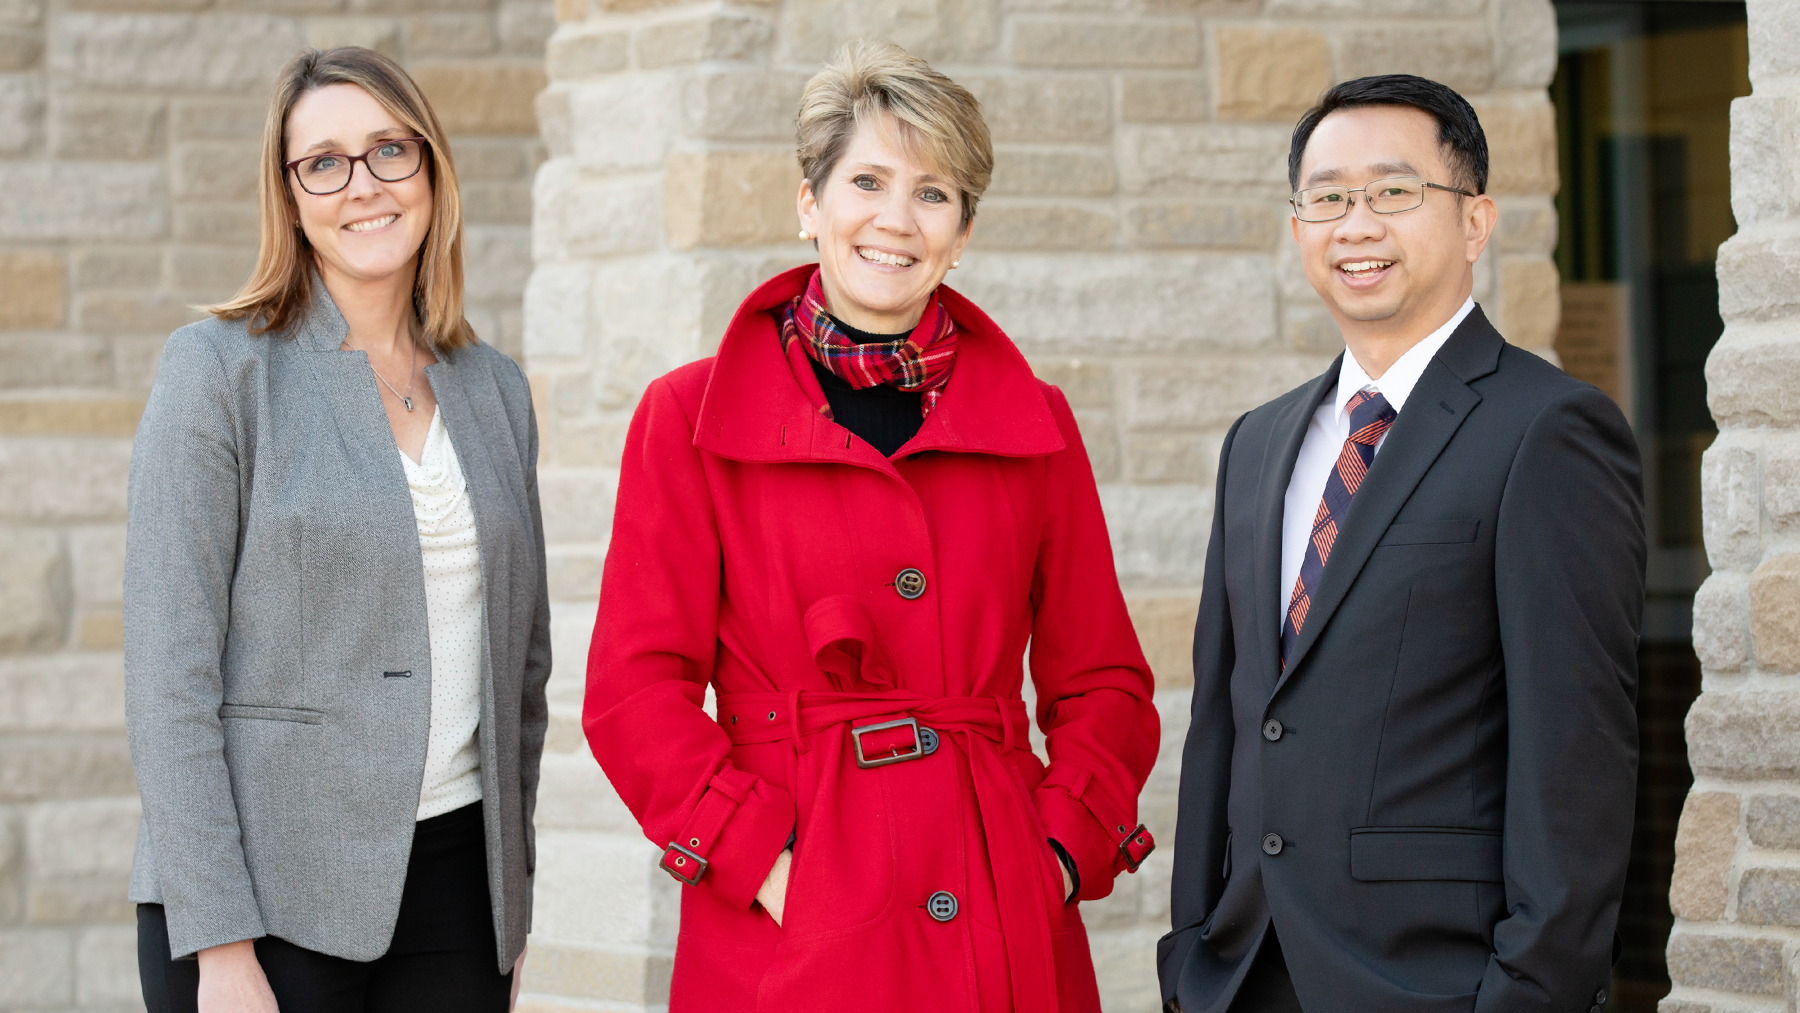 Social work professor Kevin Tan with from left: director of instruction Nicole Rummel and superintendent Lindsey Hall, both of Mahomet-Seymour CUSD No. 3. Photo by Fred Zwicky